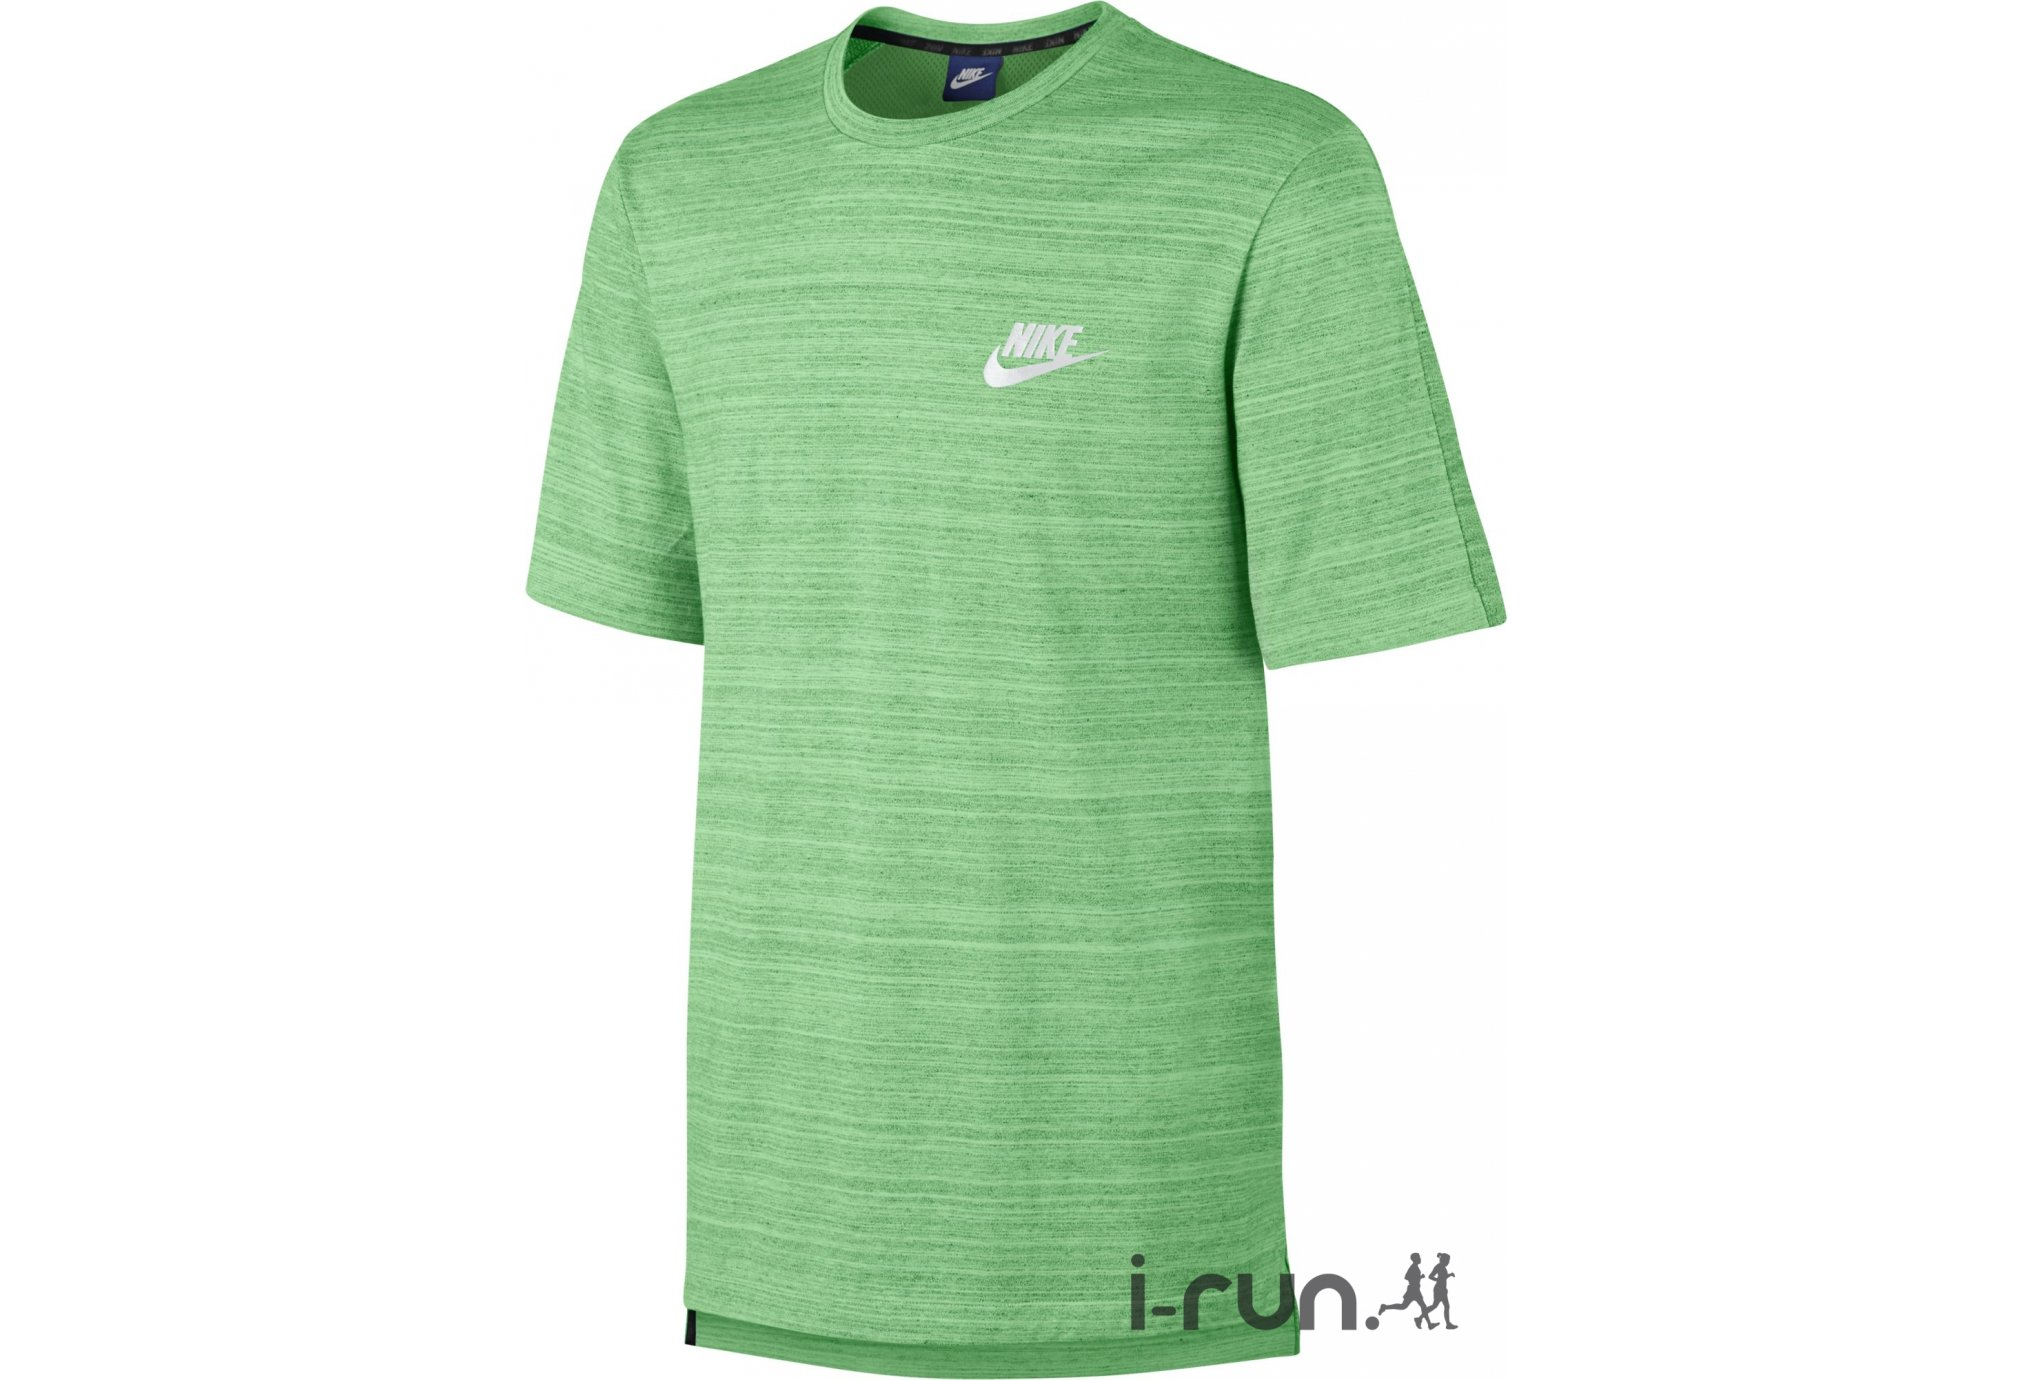 design intemporel 67f23 f6f16 Resathlon - Nike Advance 15 M vêtement running homme